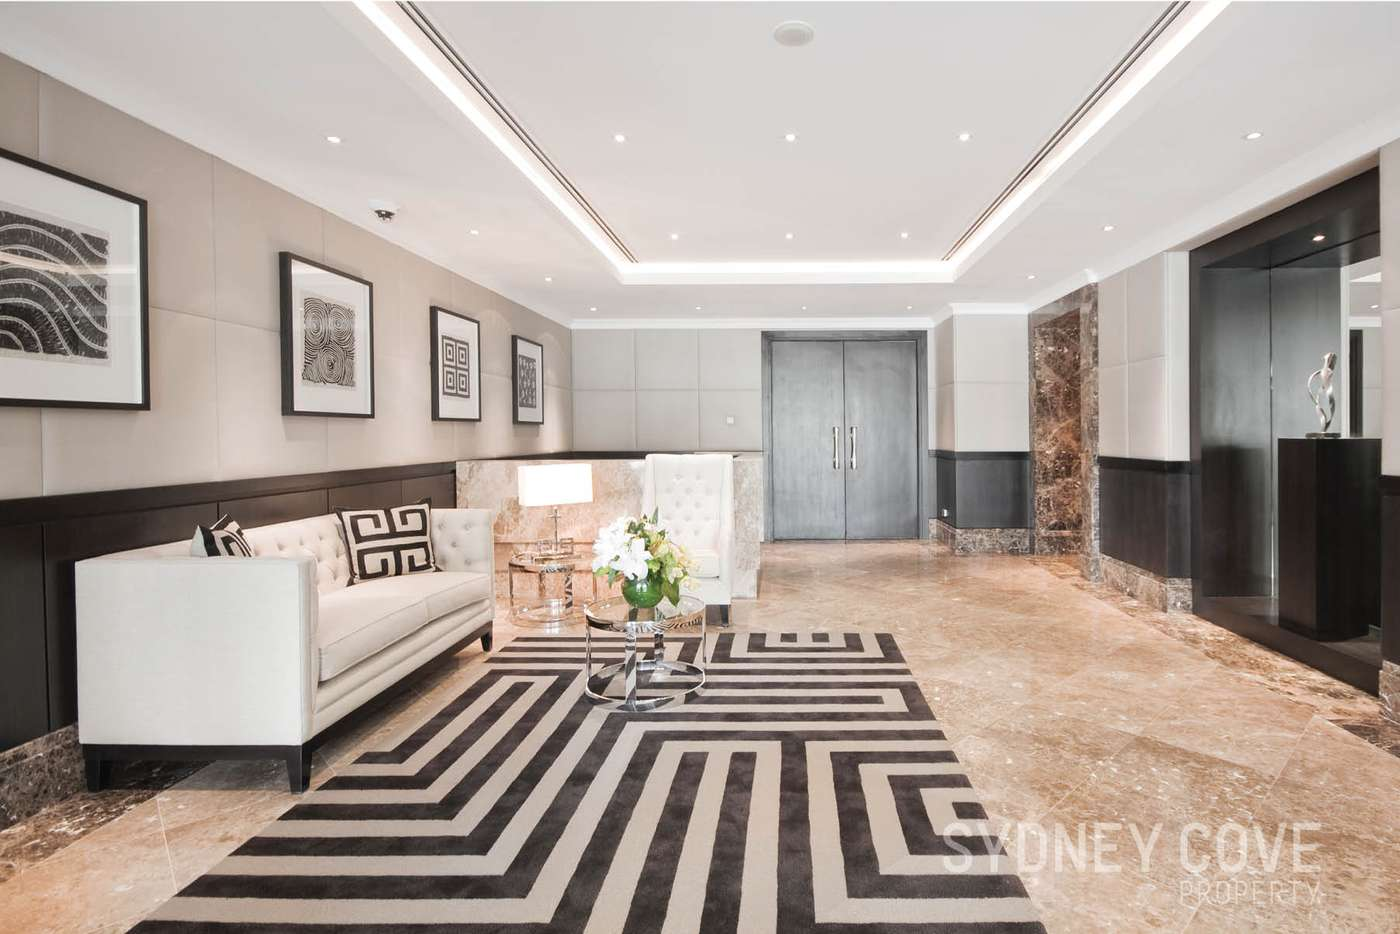 Seventh view of Homely apartment listing, 183 Kent St, Sydney NSW 2000